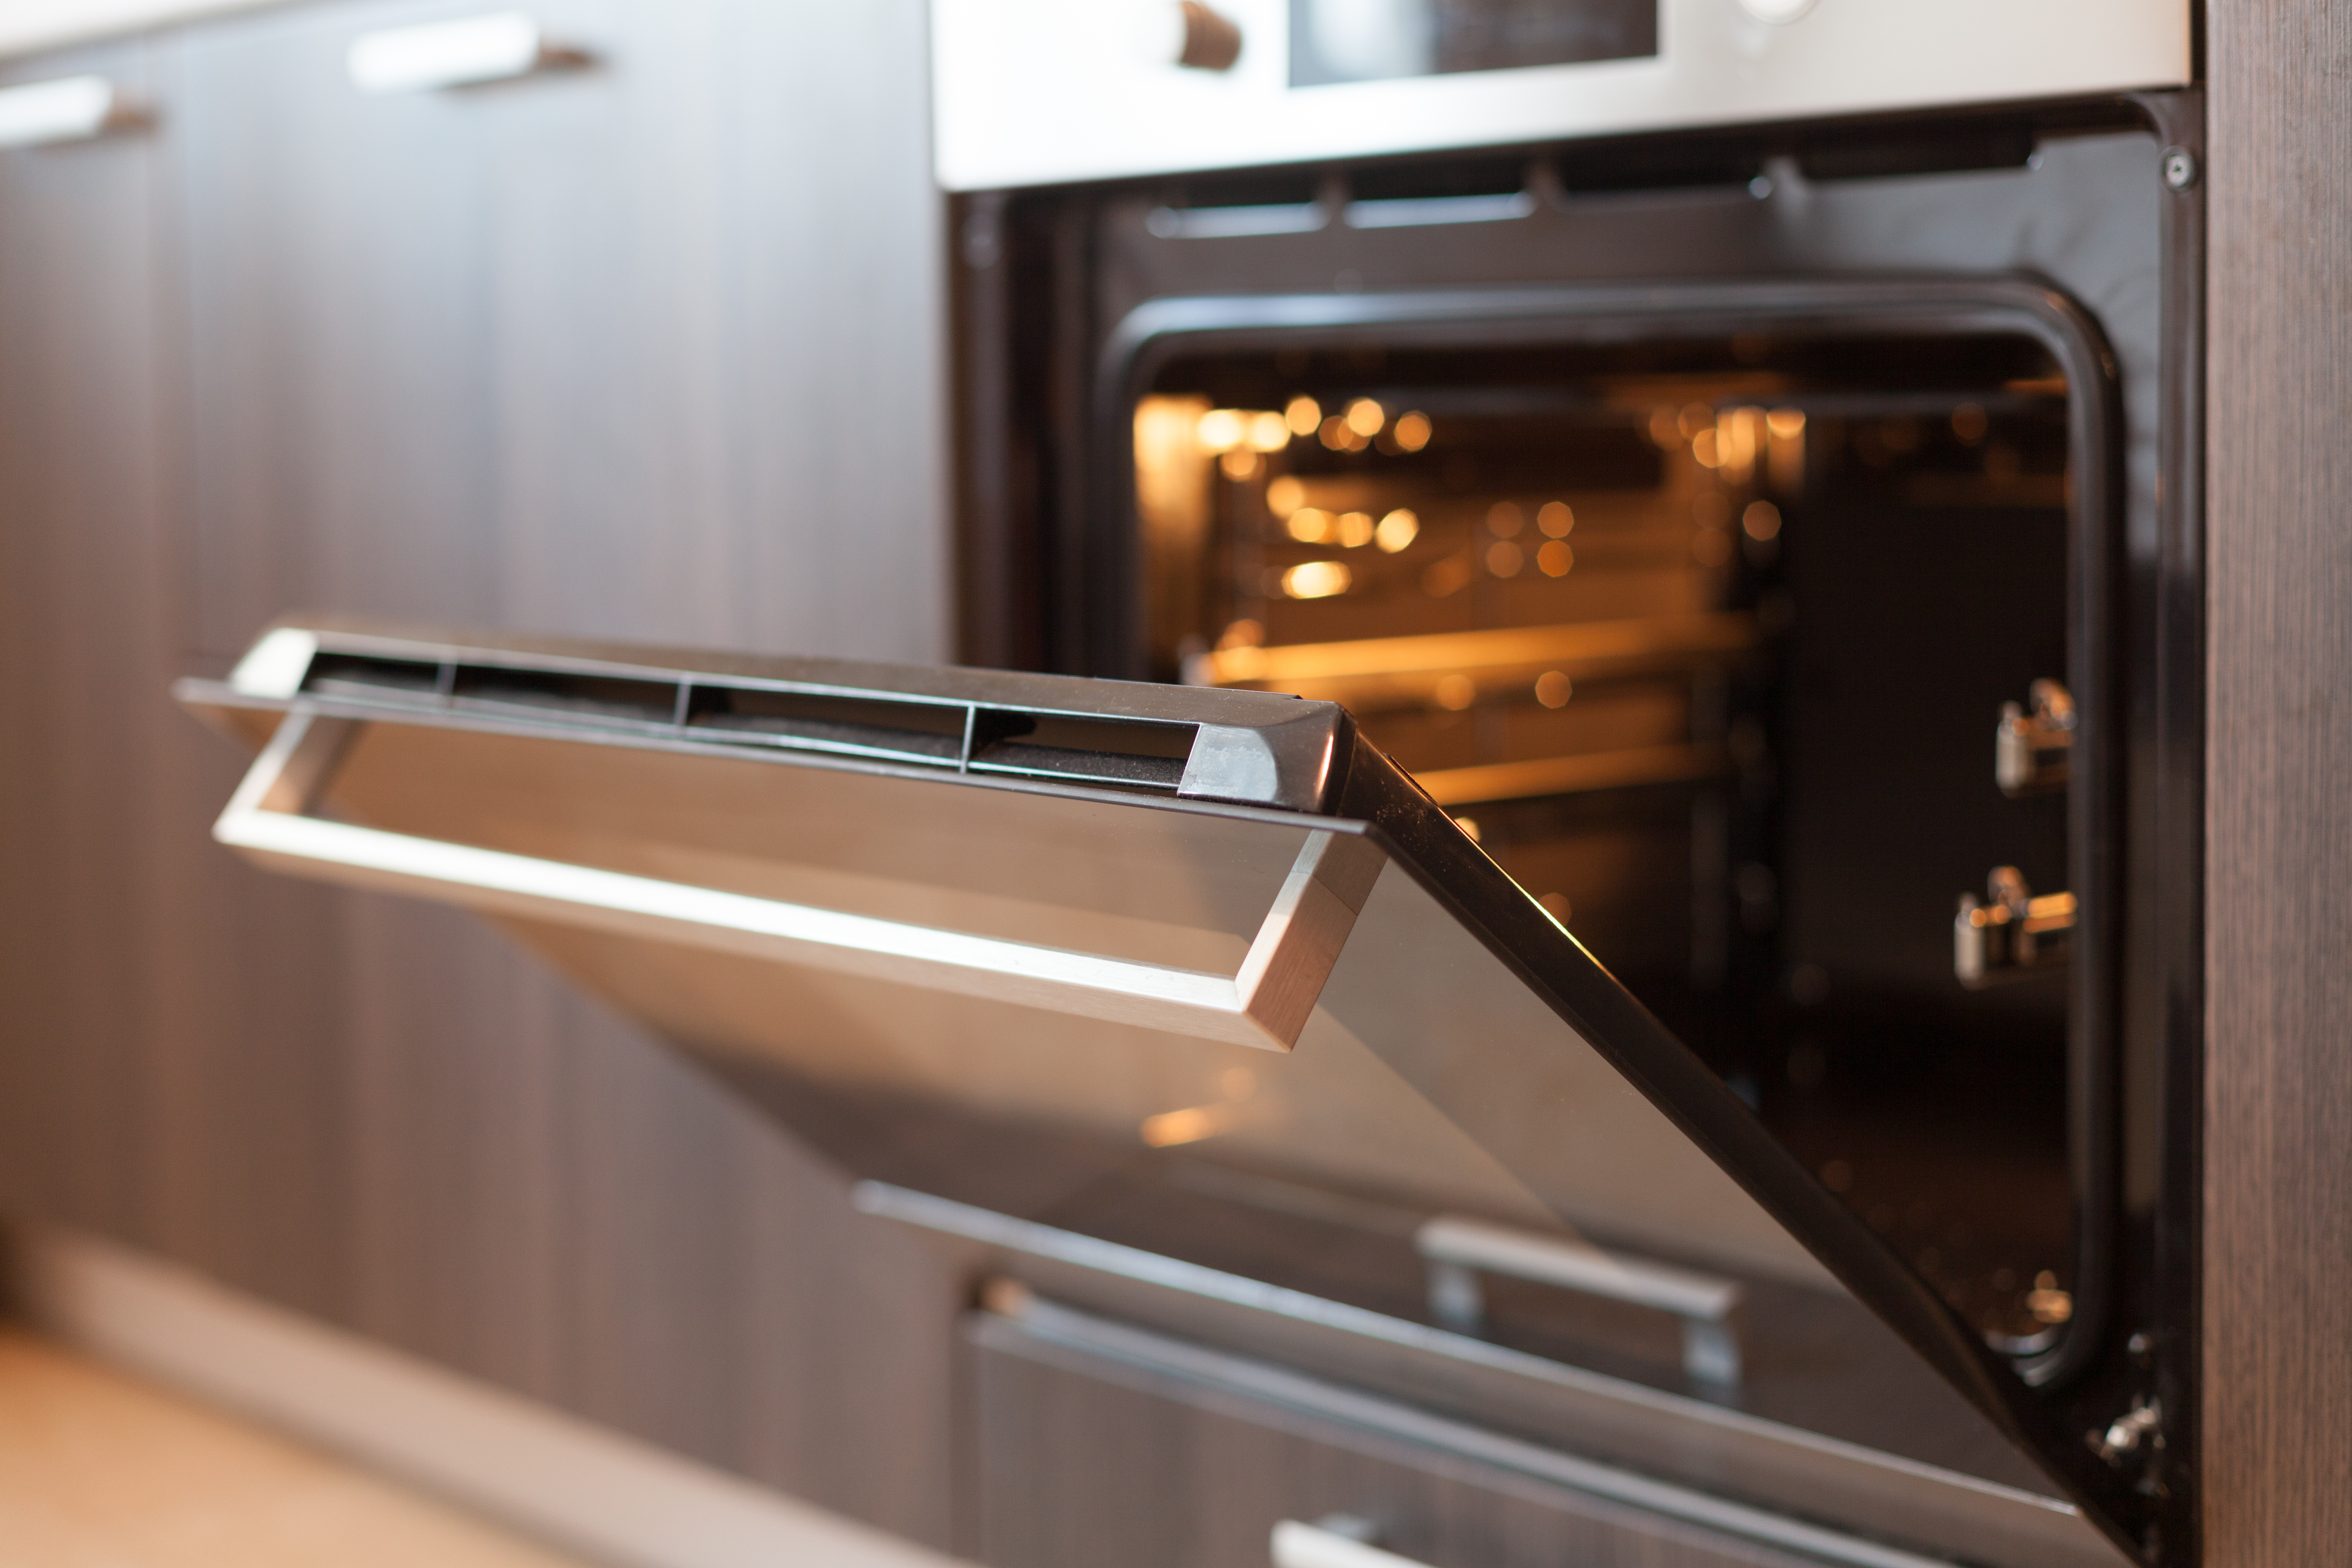 Steel for oven applications